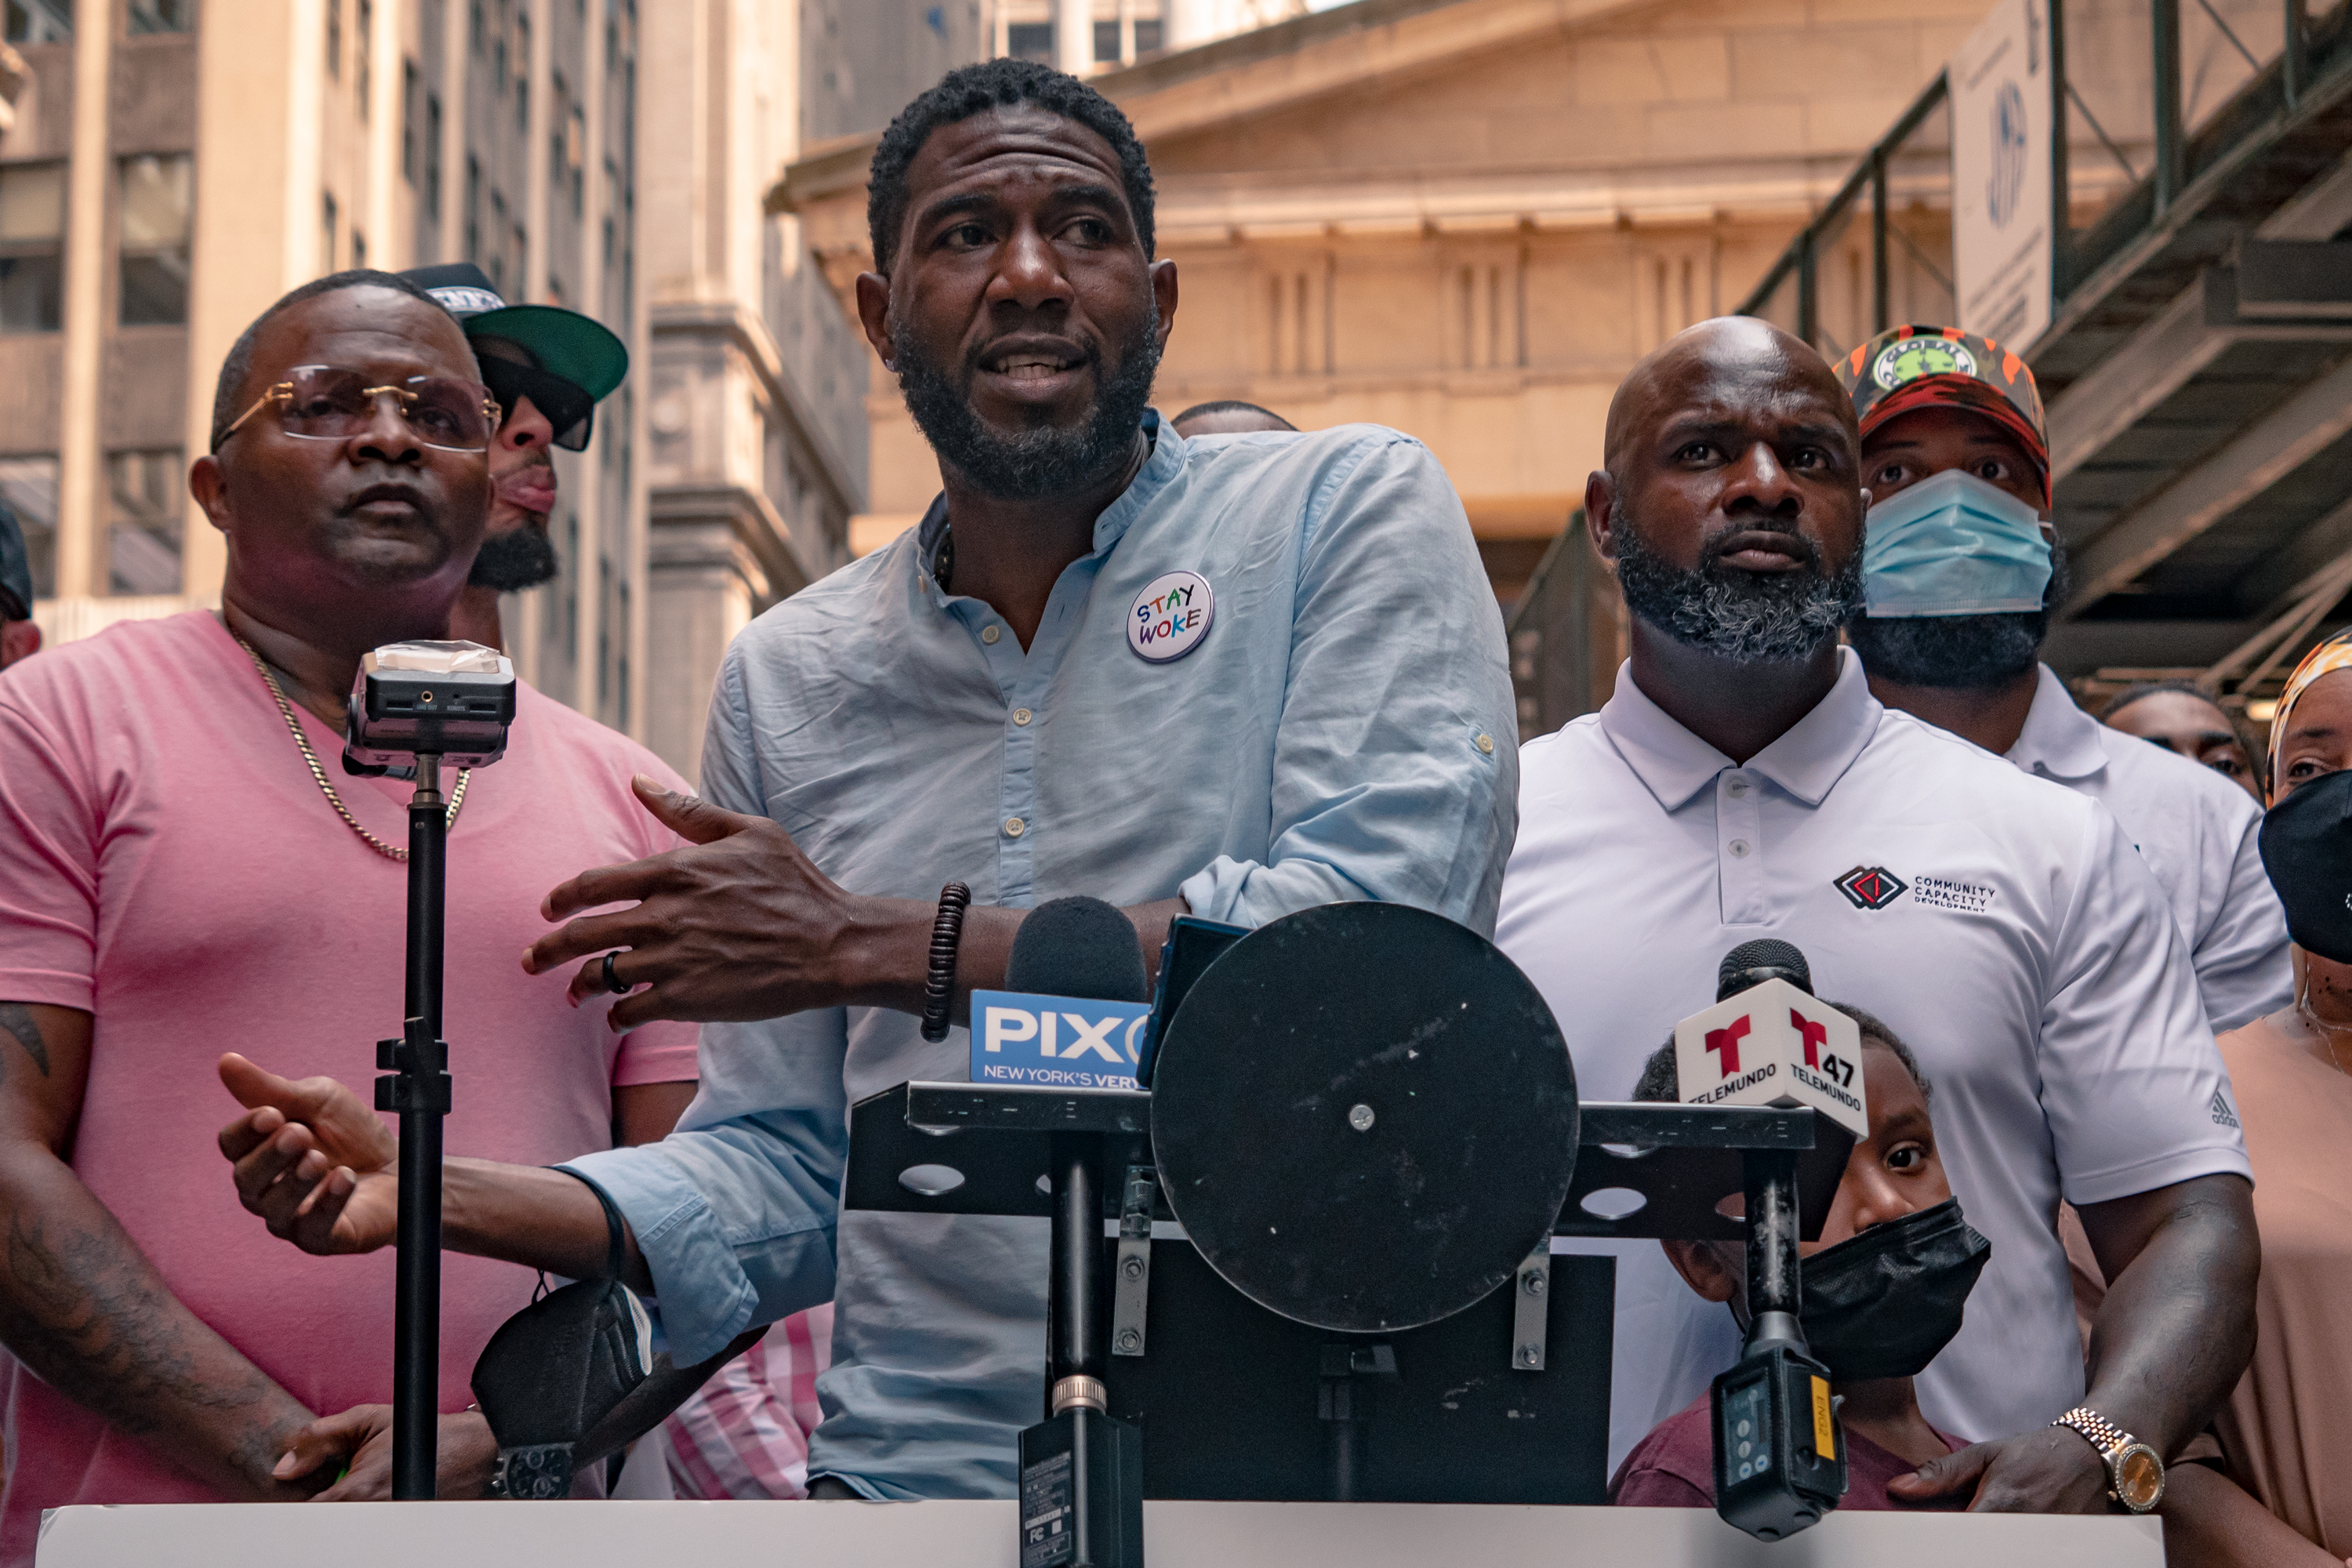 Public Advocate Jumanne Williams speaks at a Wall Street anti-violence protest organized by K. Bain, founder of Community Capacity Development (right) on Aug. 10, 2021.